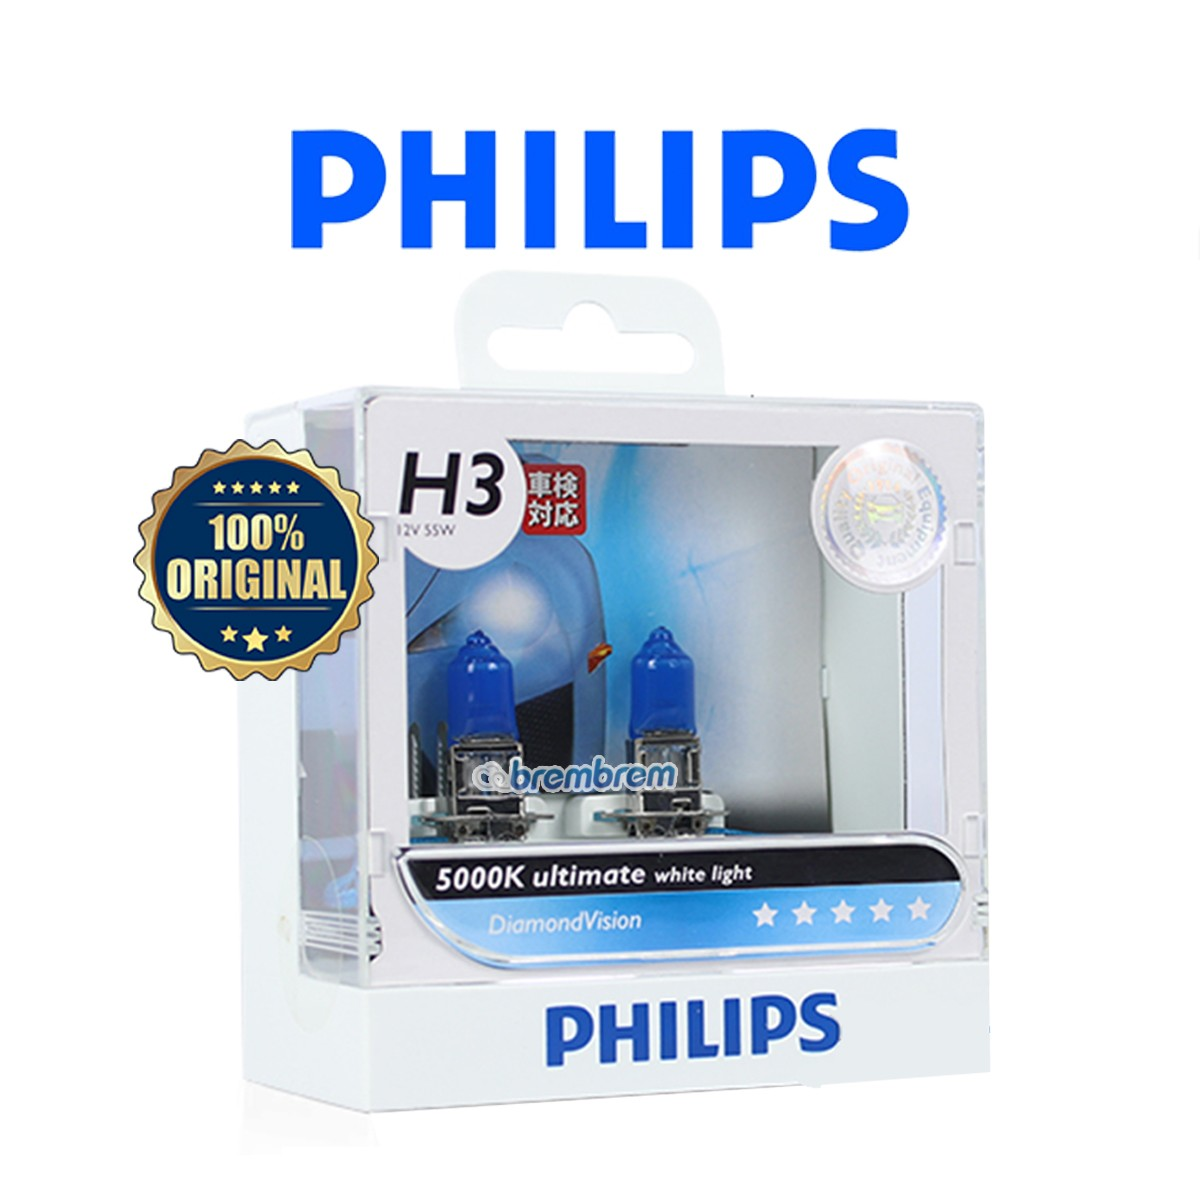 PHILIPS DIAMOND VISION H3 (5000K) - LAMPU HALOGEN